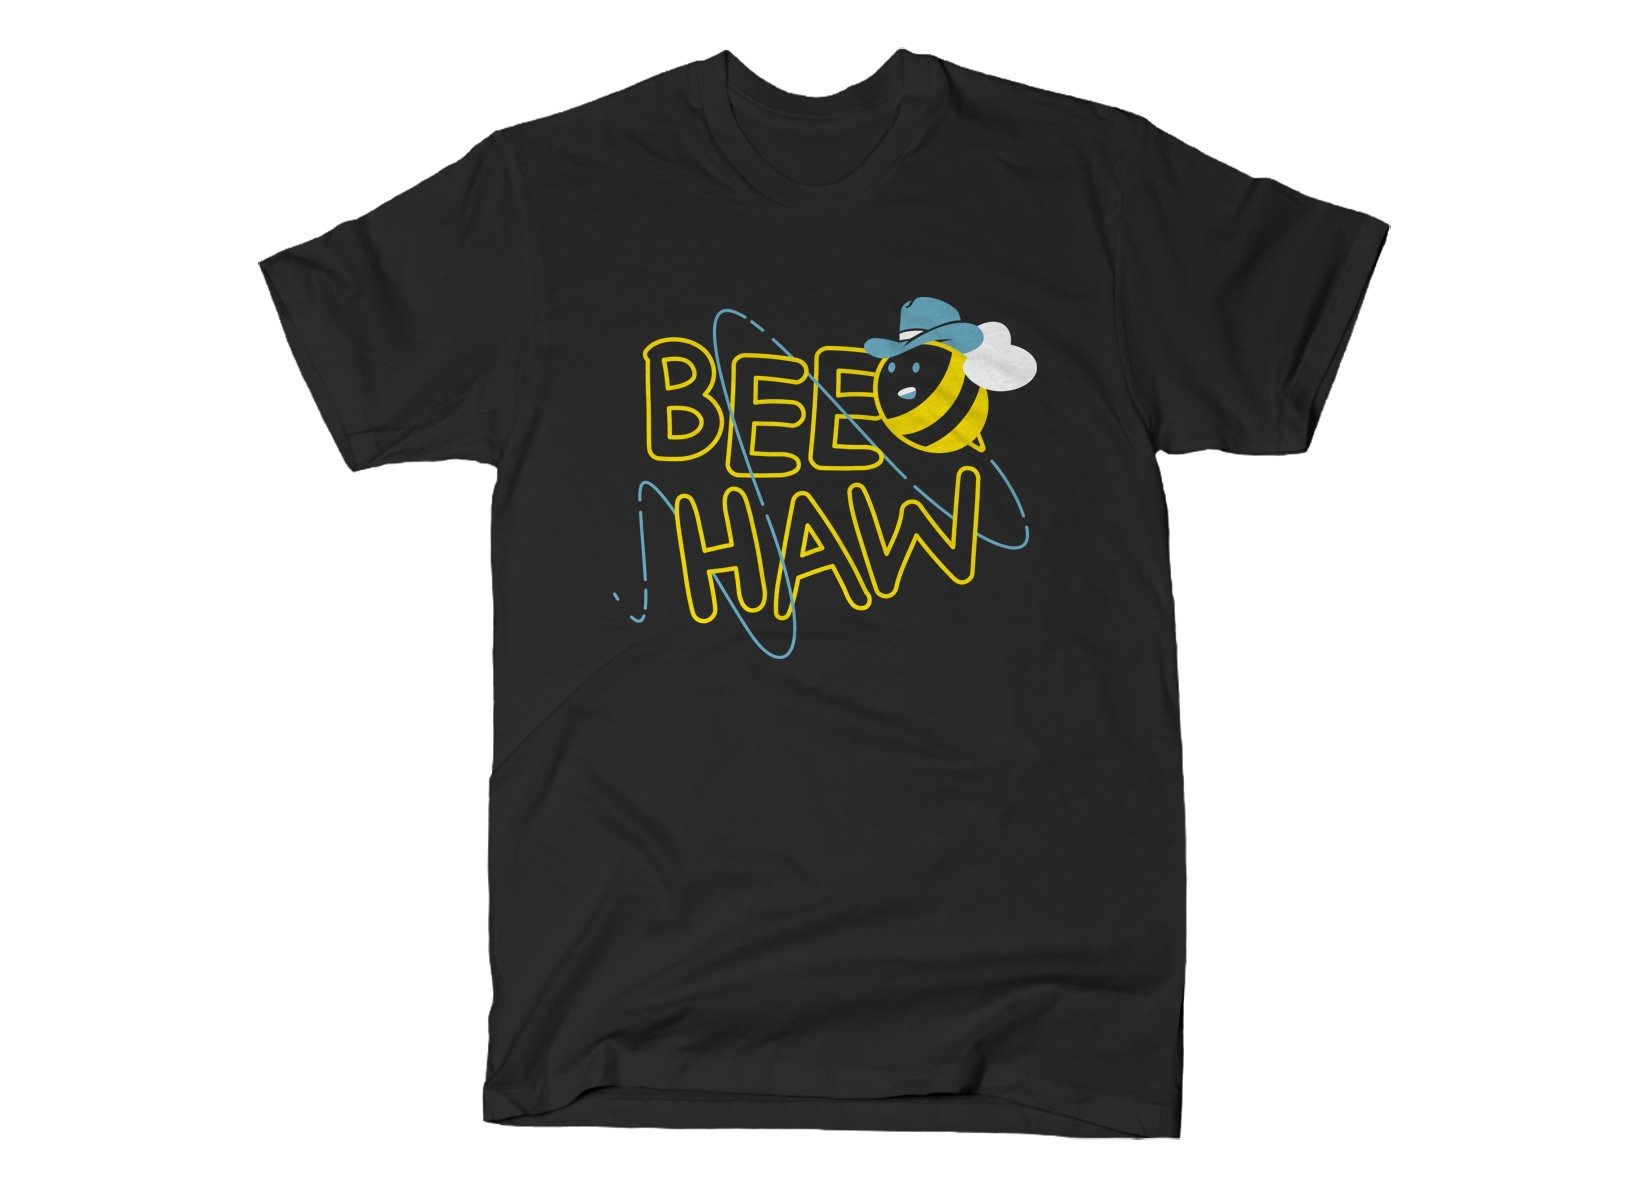 Bee Haw on Mens T-Shirt